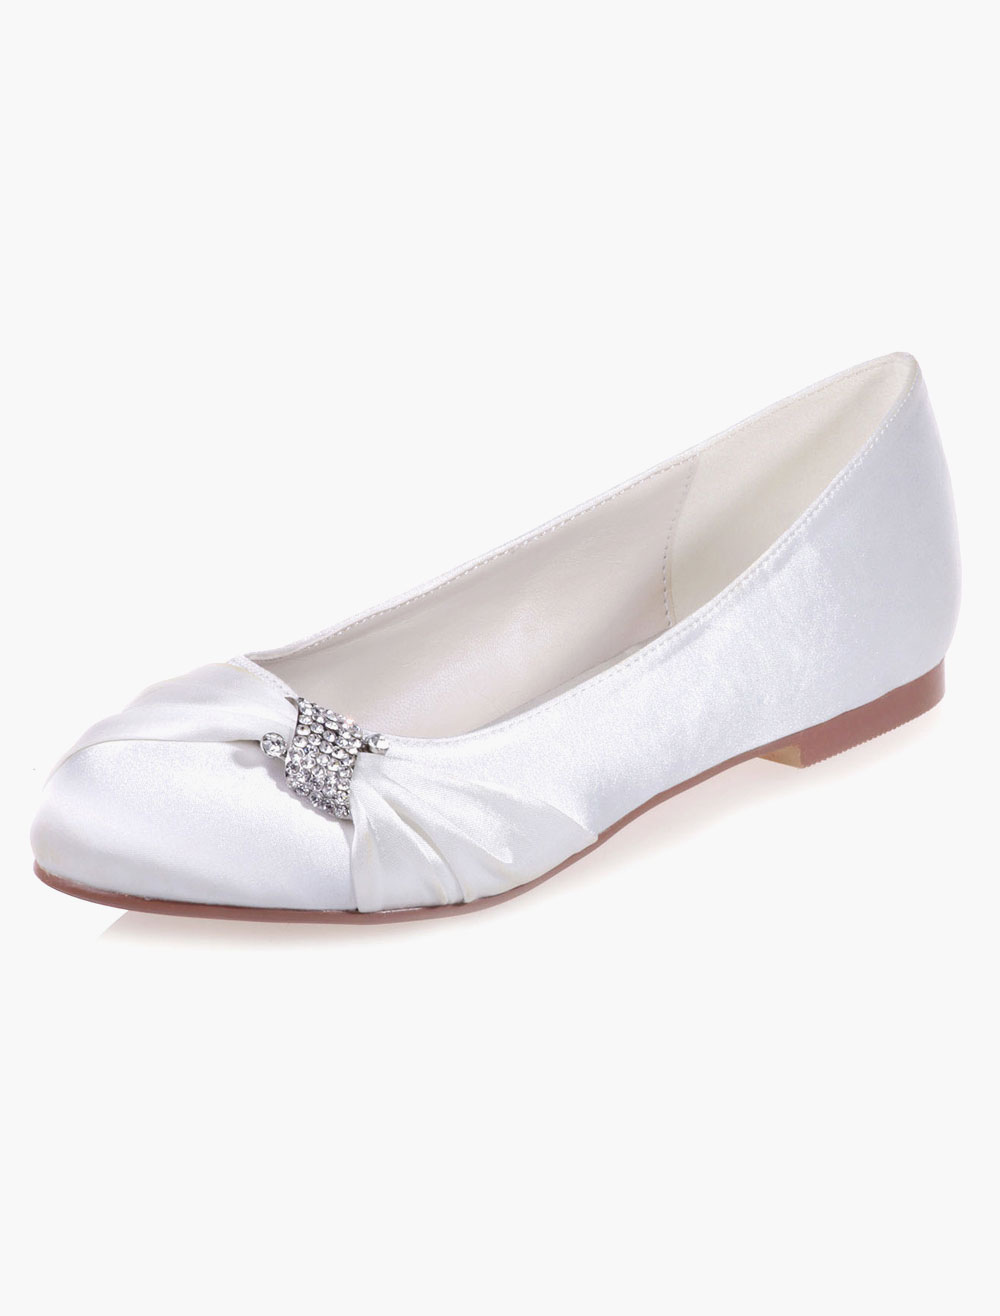 Buy Simple Slip-On Round Toe Rhinestones Satin Flats For Bride for $54.80 in Milanoo store